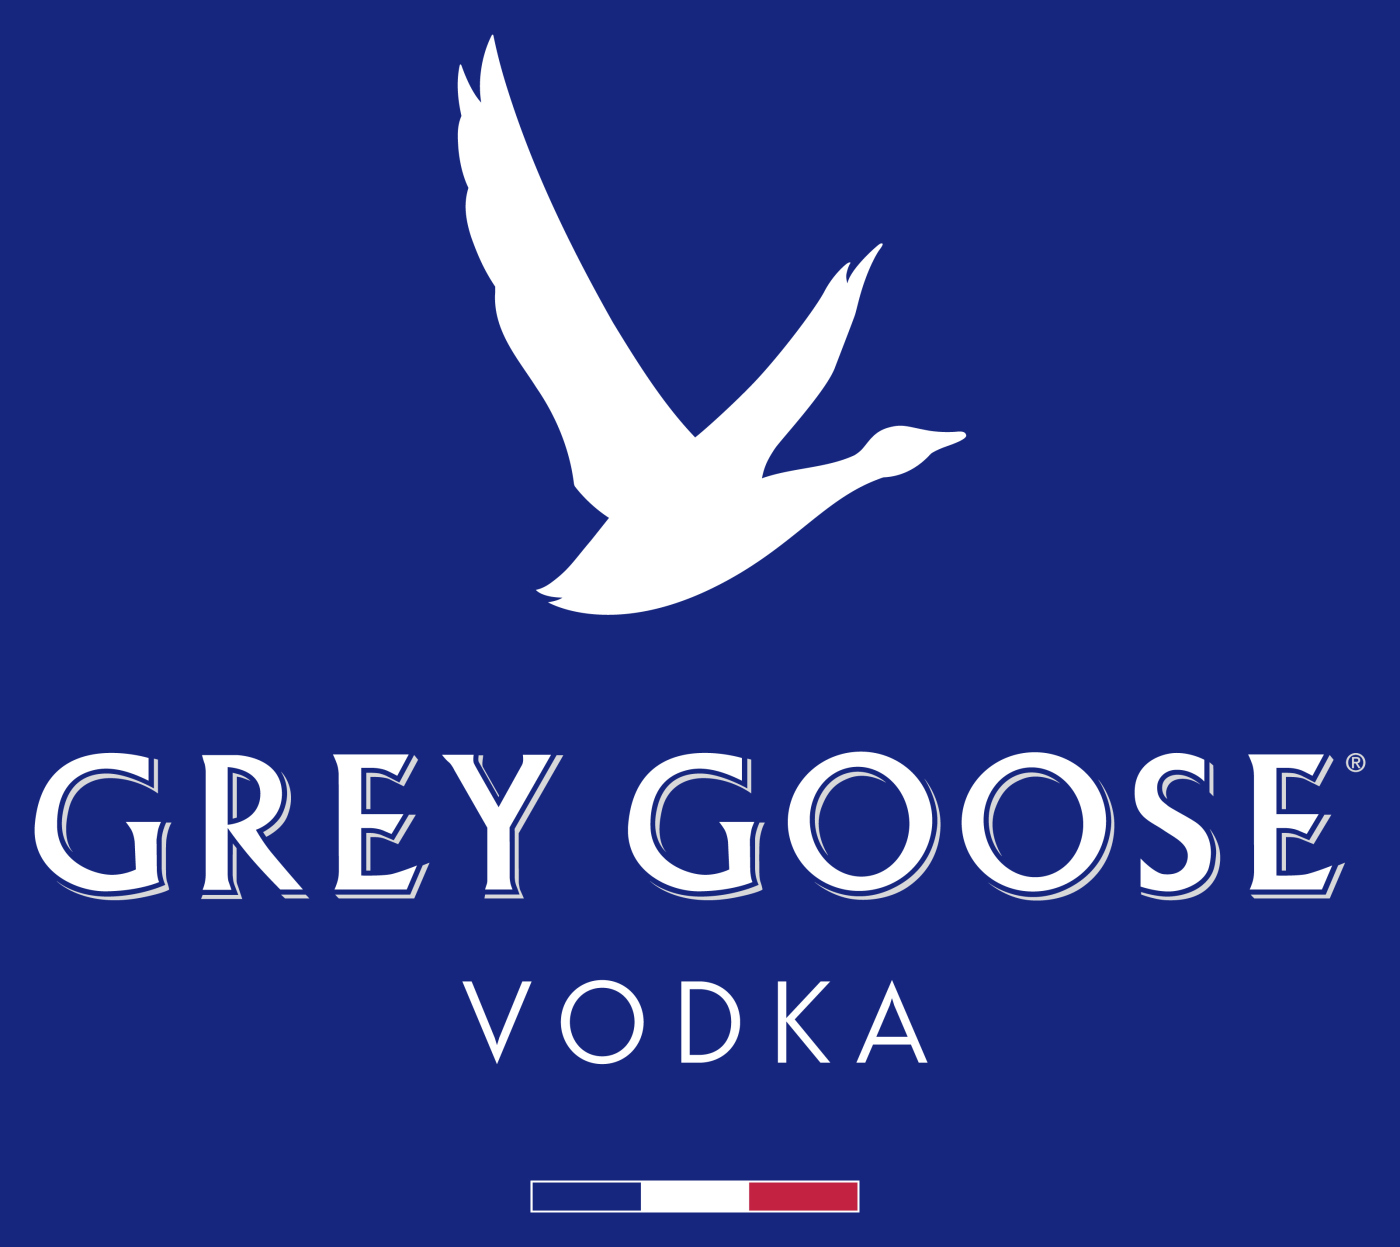 sobesavvy checks out greygoose kehindewileyart